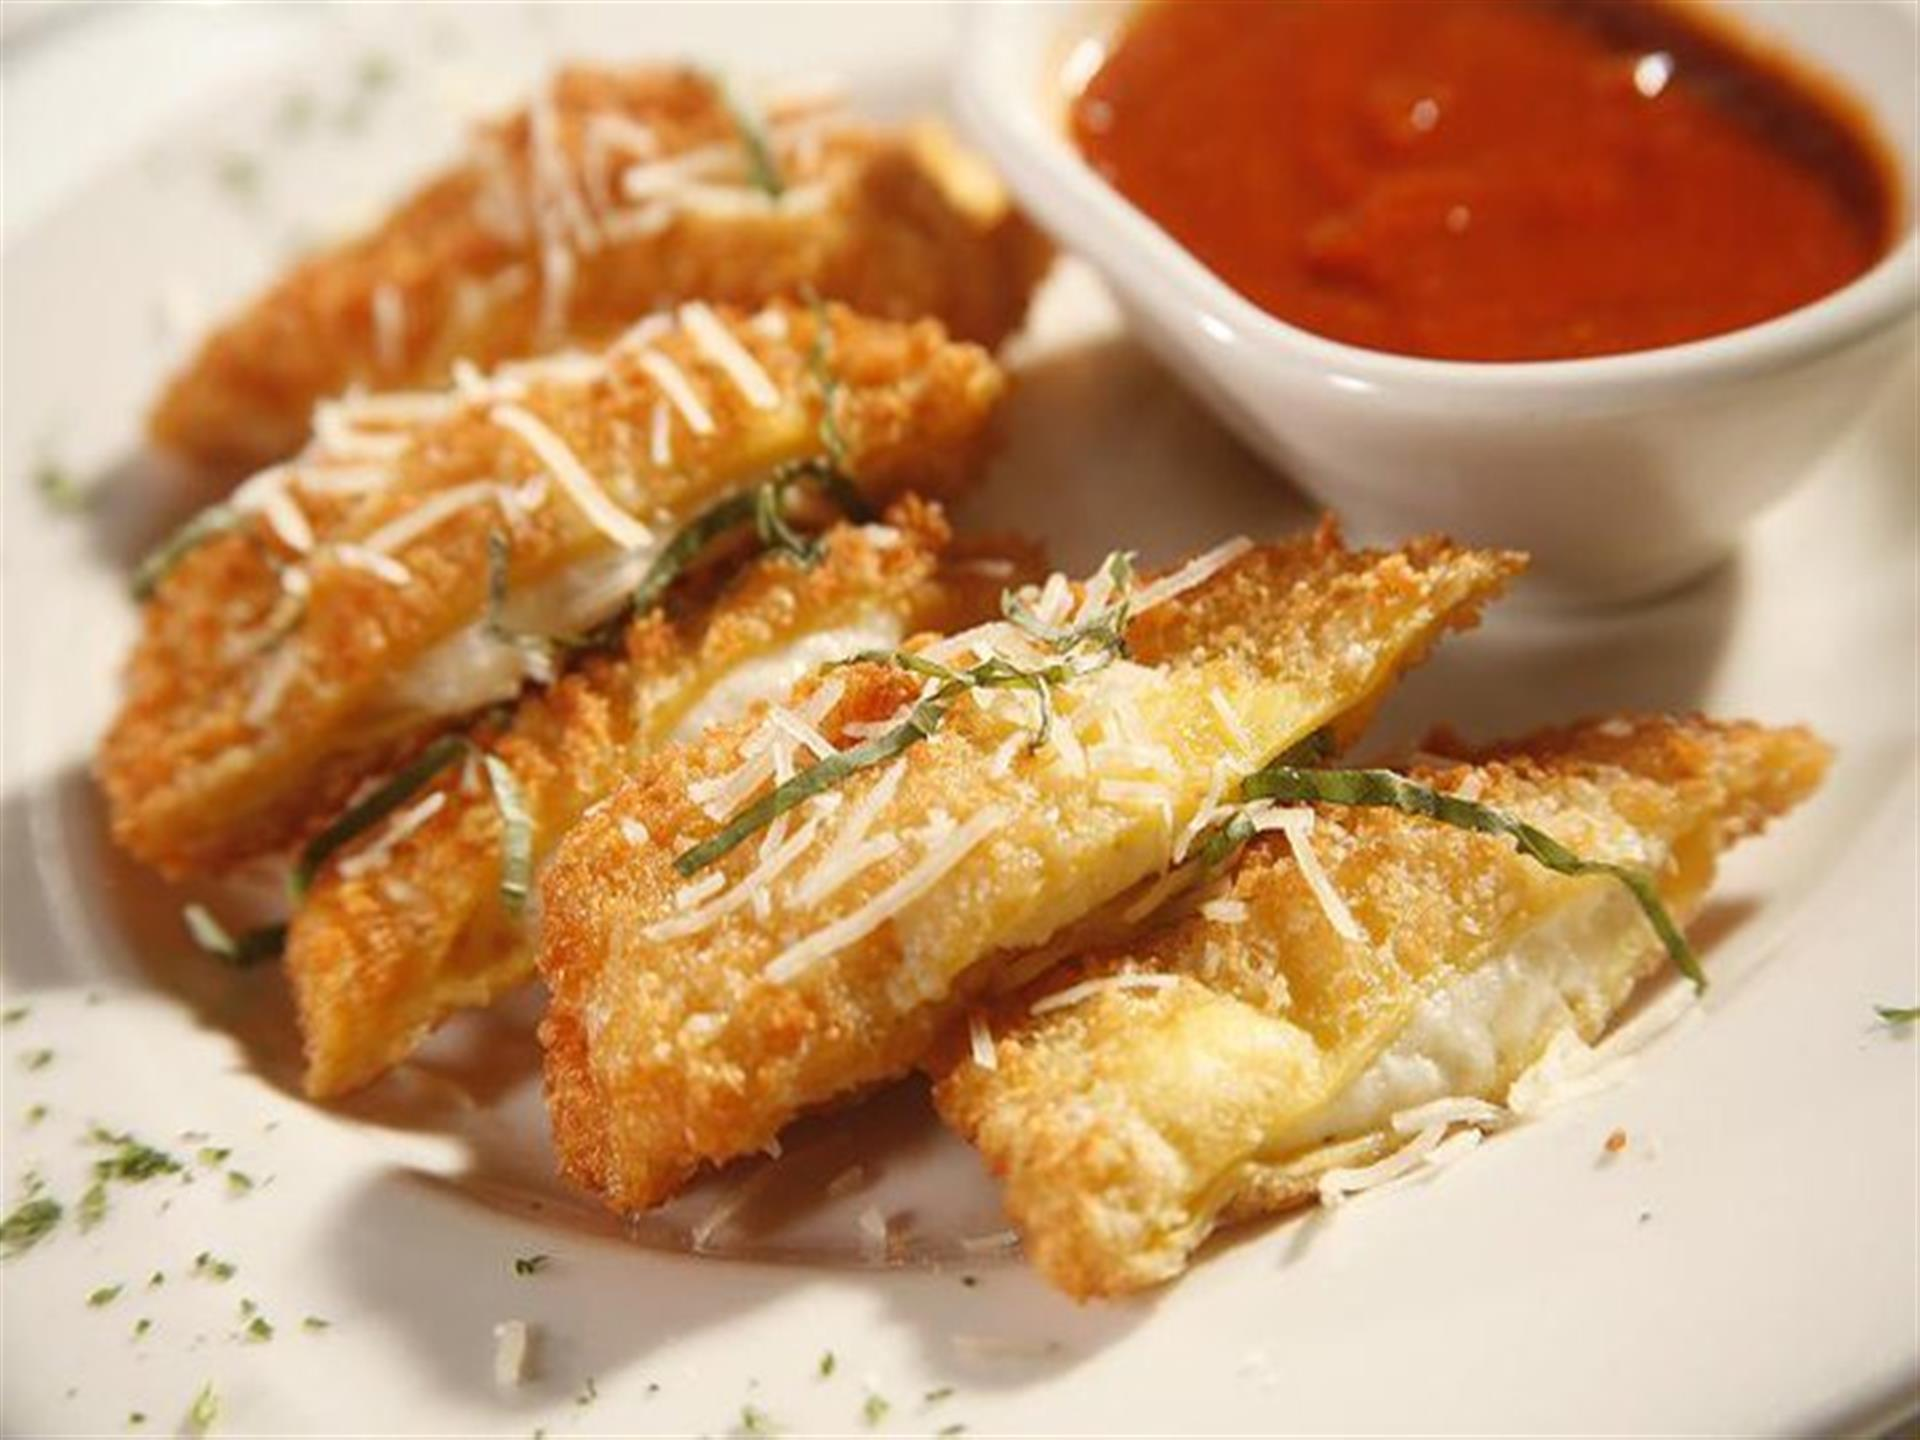 mozzarella sticks with dipping sauce